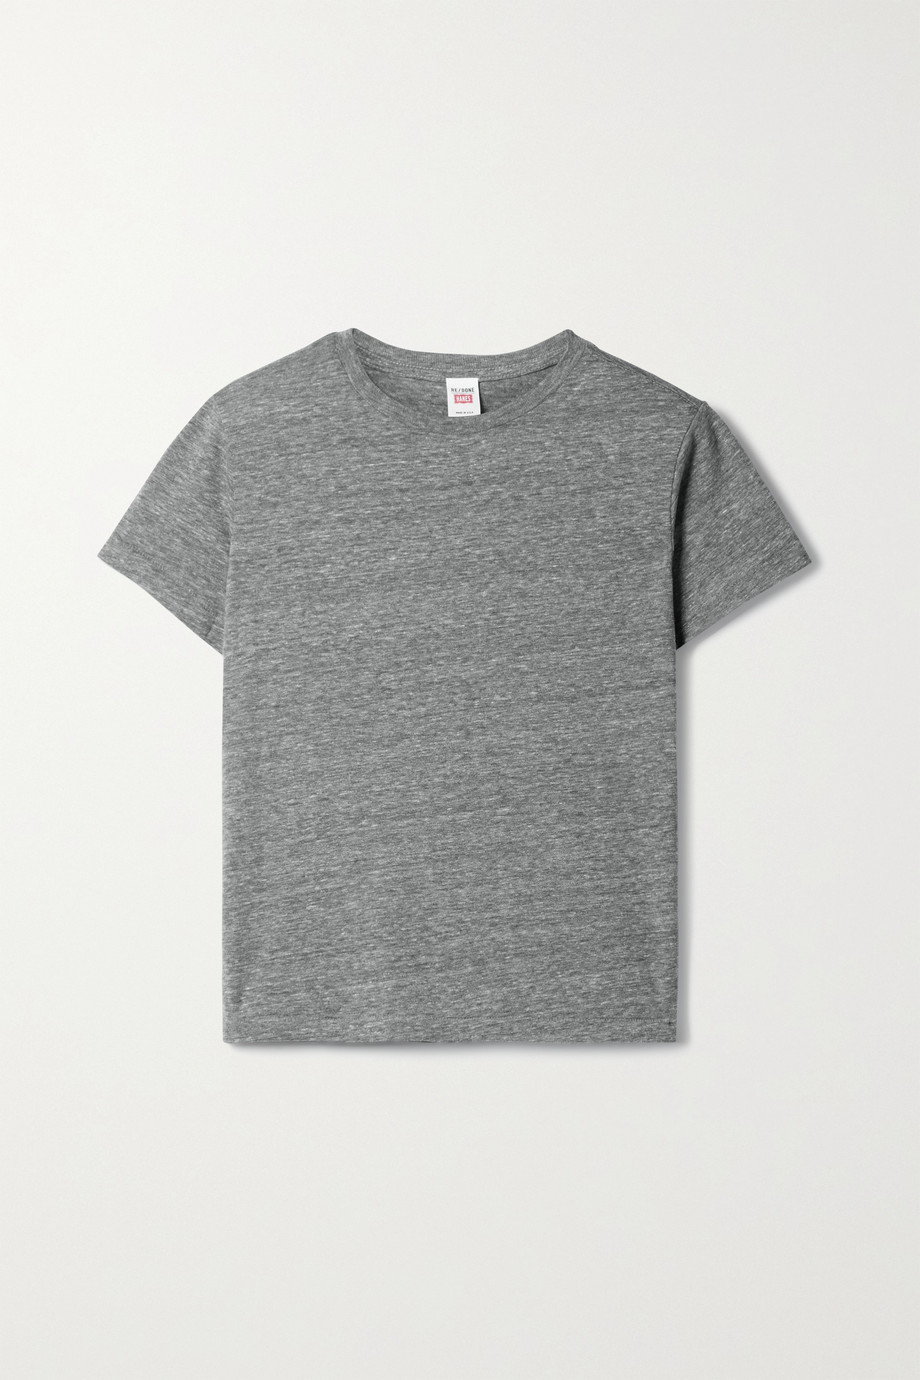 RE/DONE + NET SUSTAIN + Hanes Classic slub jersey T-shirt